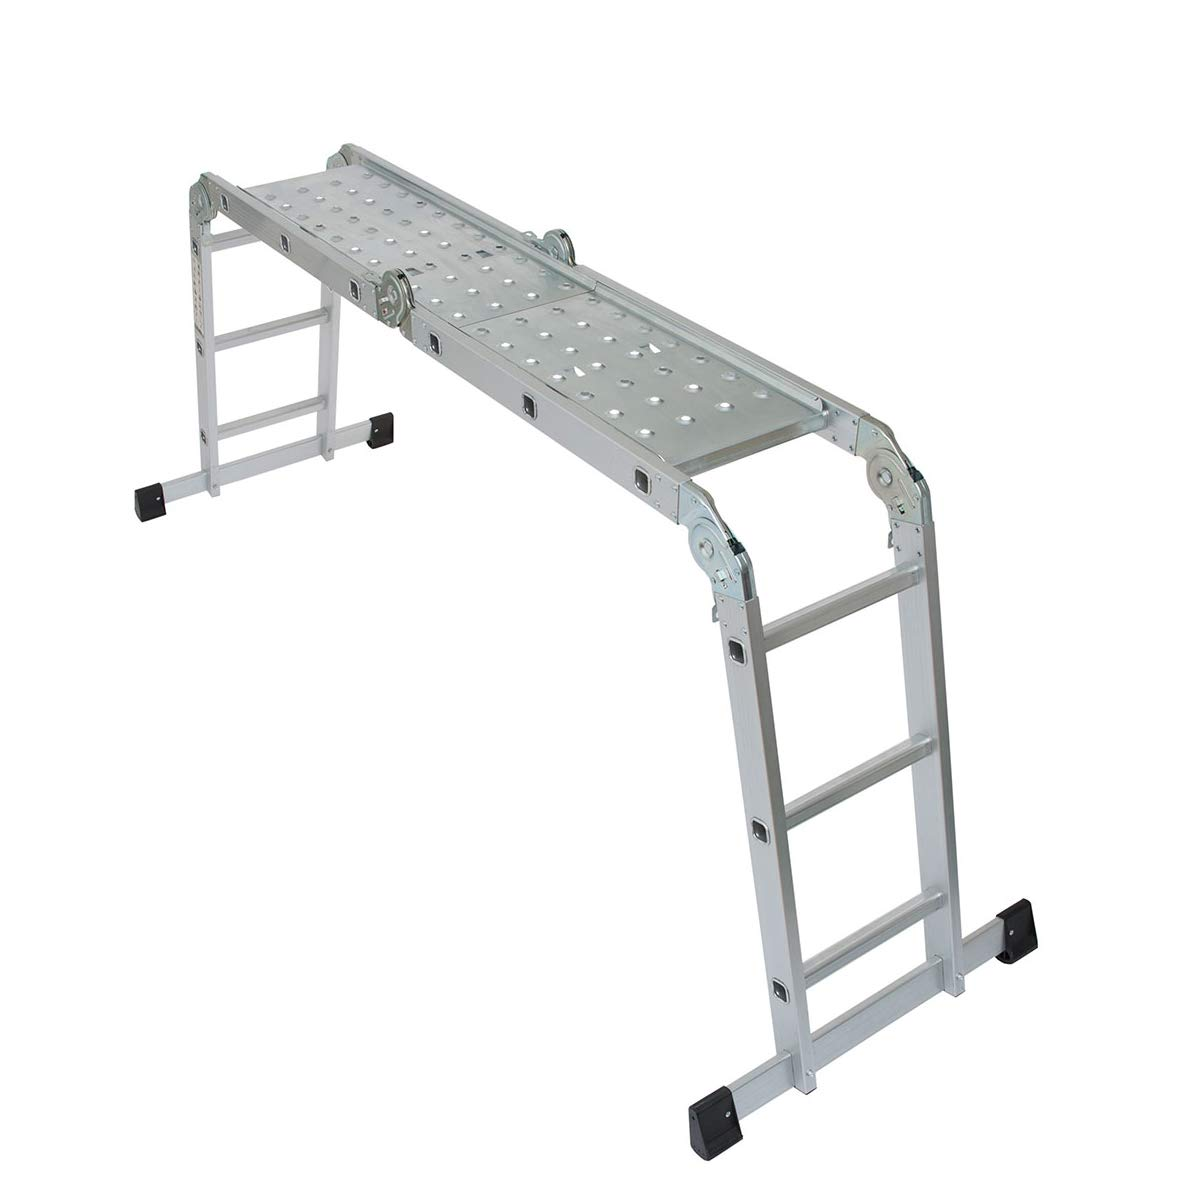 Wolf 11 in 1 Aluminium 3.37M Multi Purpose Folding Ladder with Steel Platform Trestle Inserts Use On Staircase Step Work Bench EN131